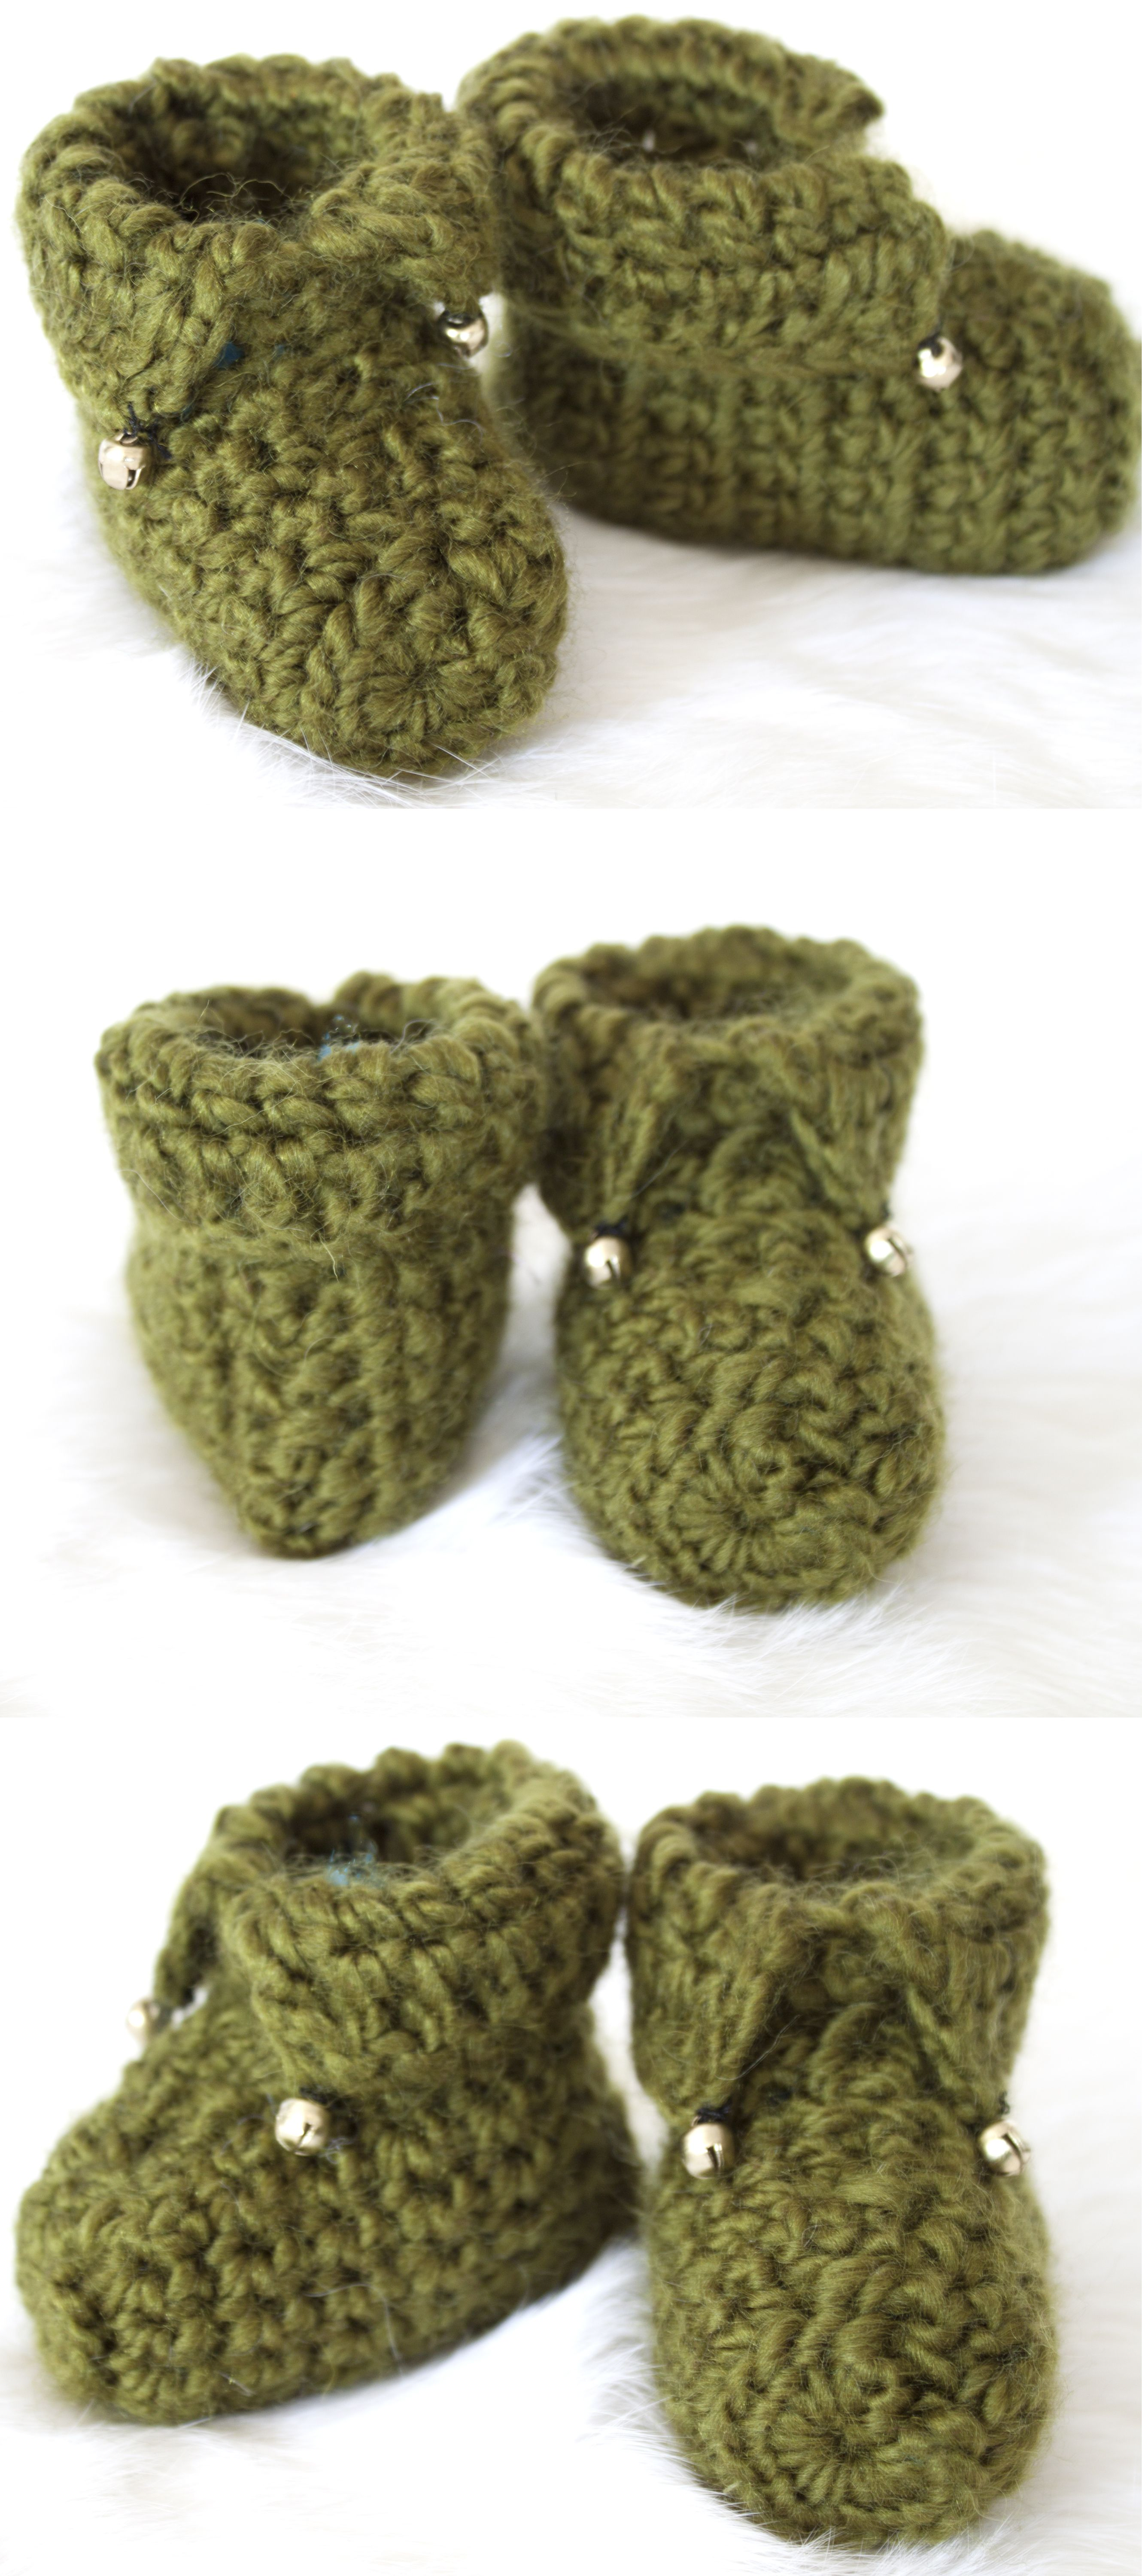 Crocheted elf booties pattern is from ravarly com crochet booties